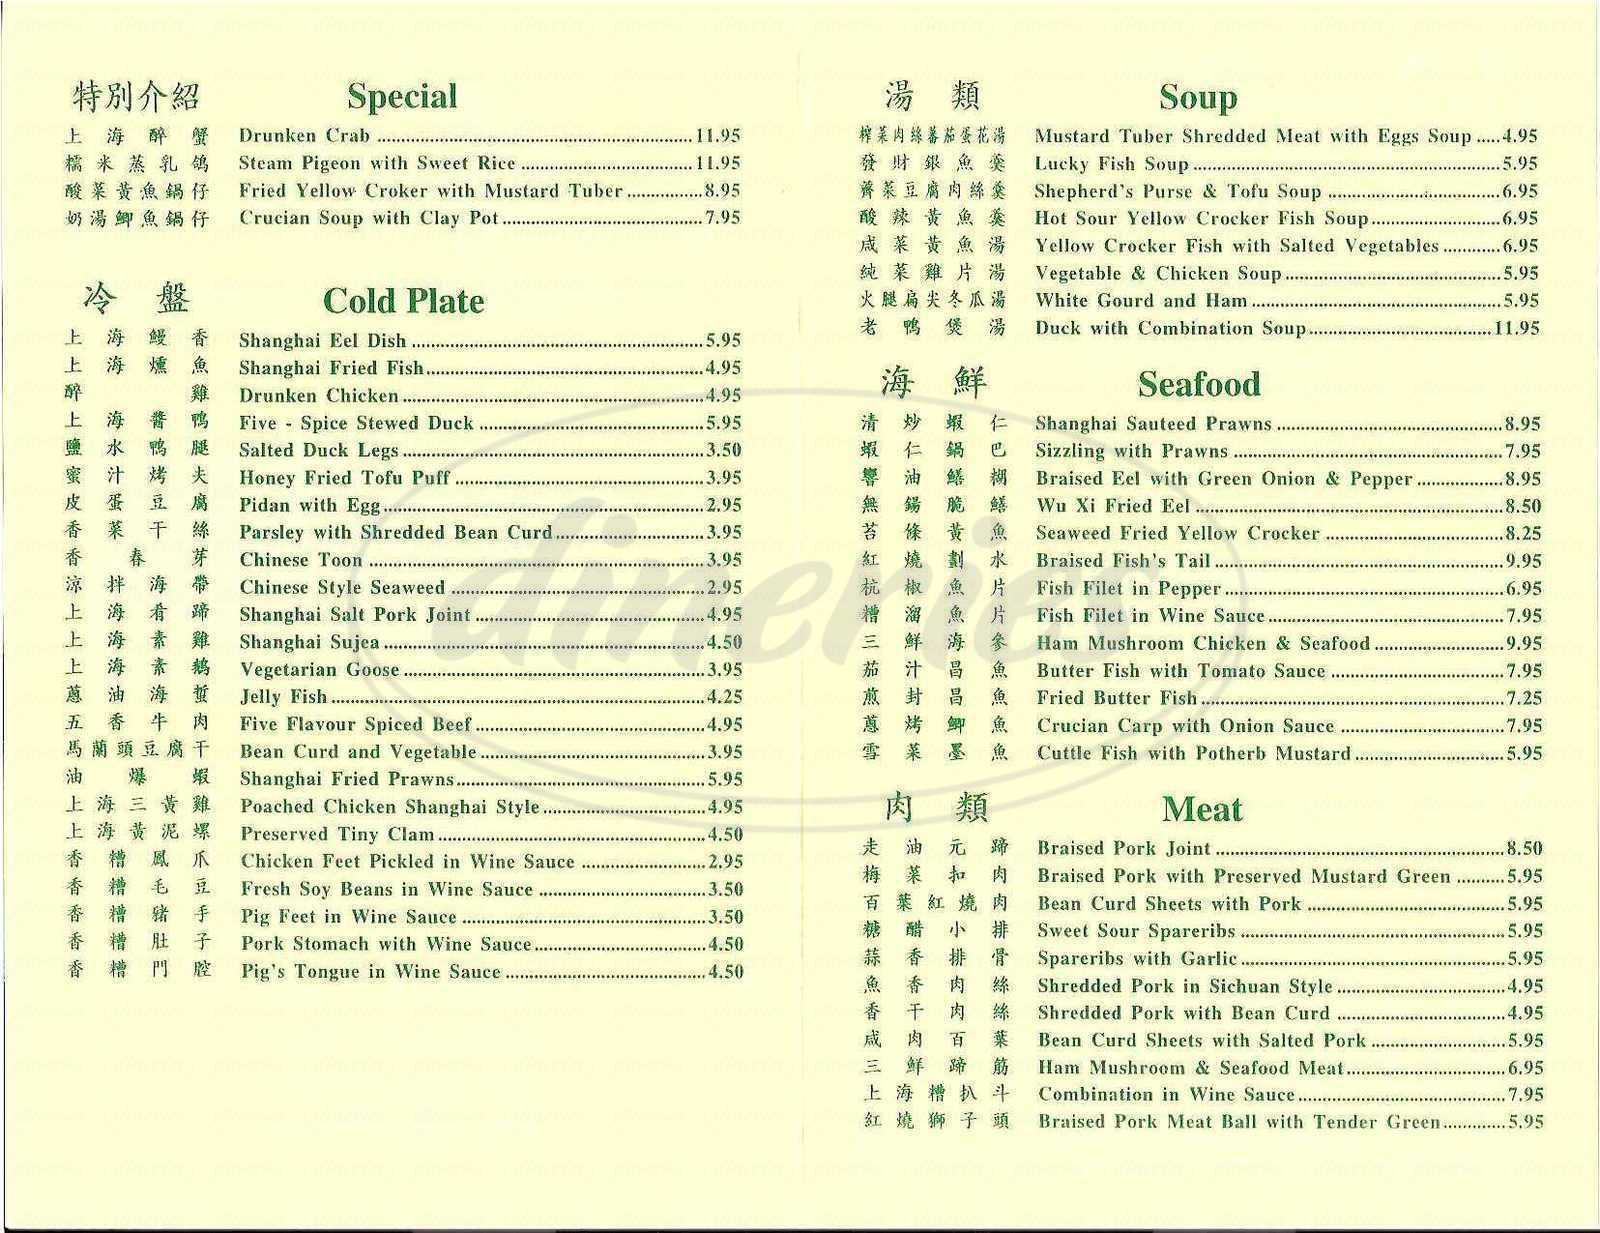 menu for Shanghai